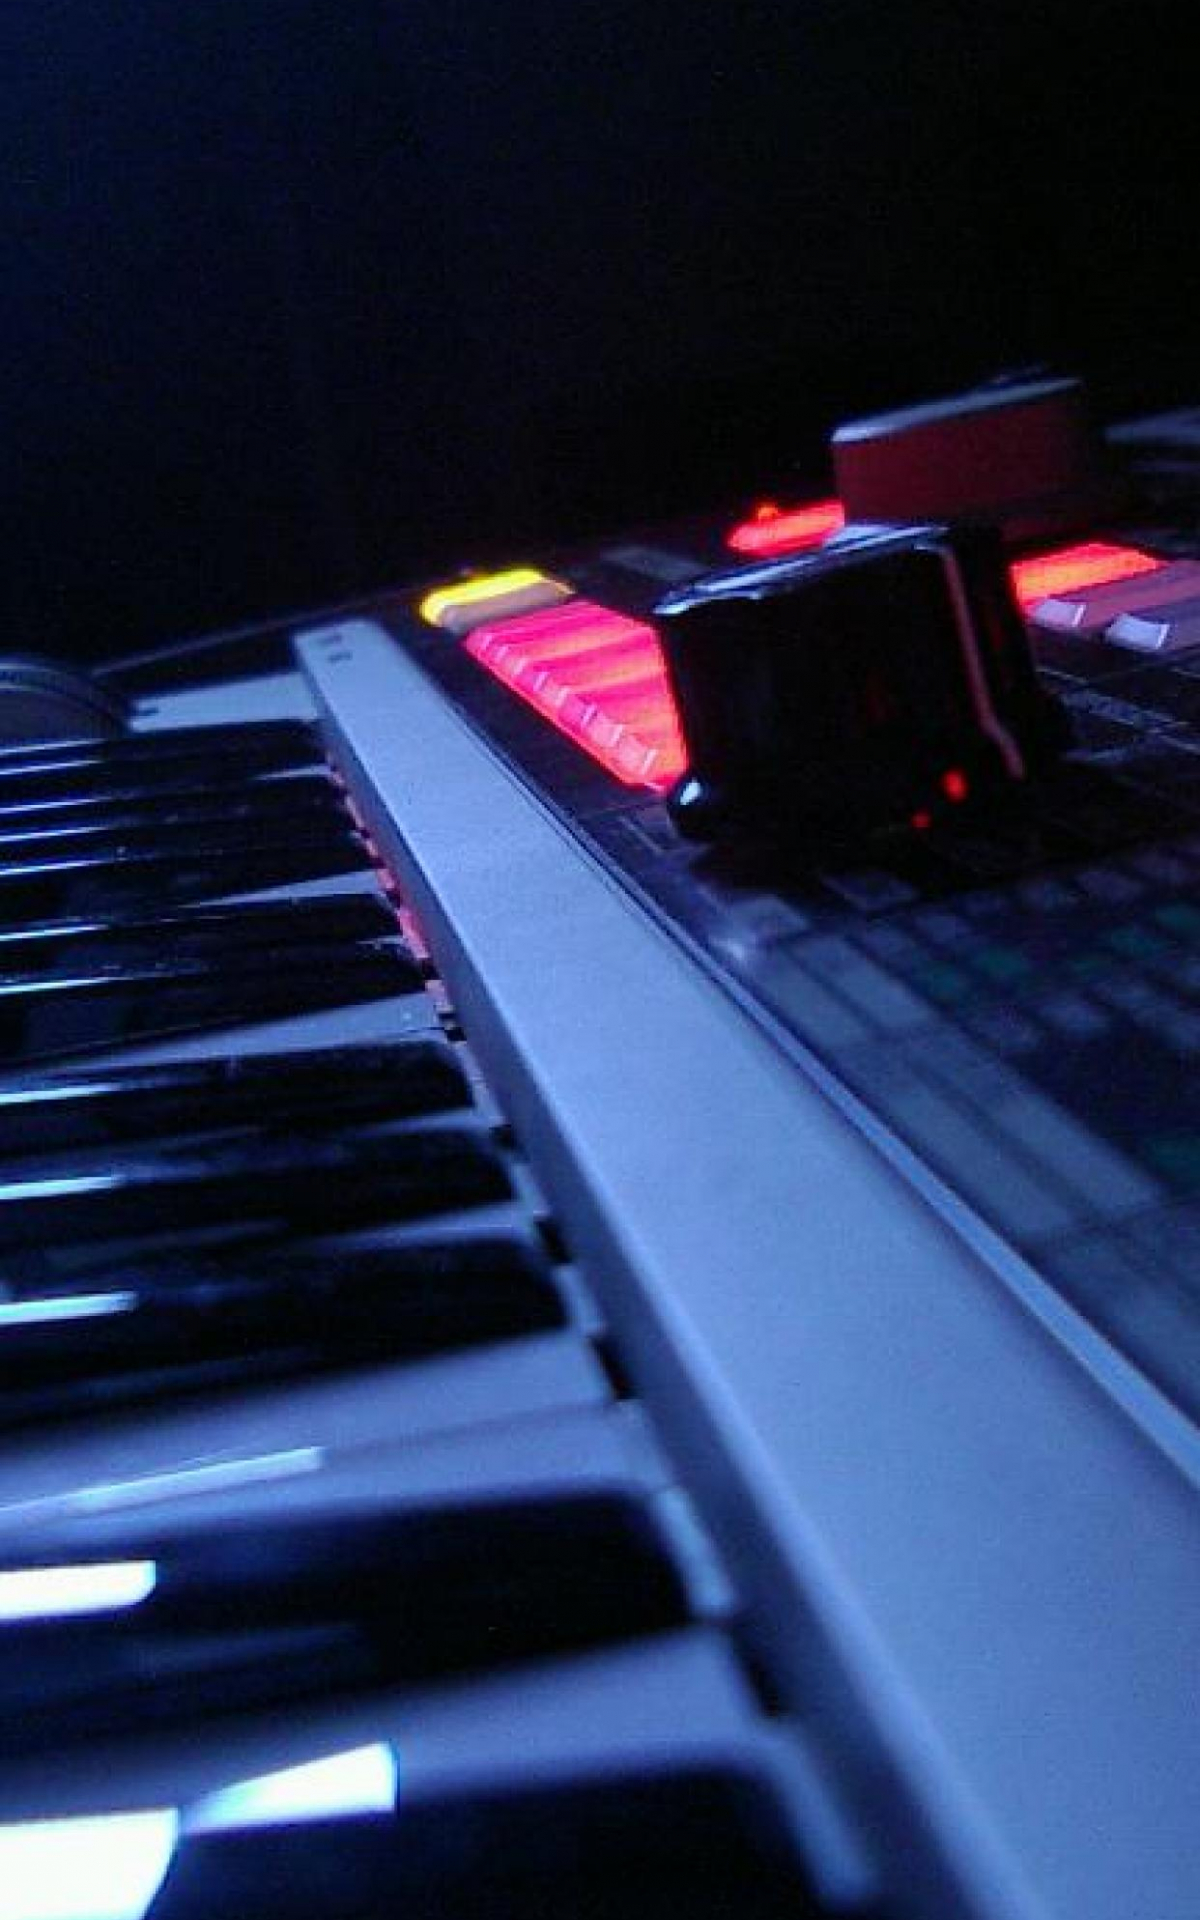 Free Download Music Piano Hd Wallpapers Desktop Backgrounds Mobile 1242x2208 For Your Desktop Mobile Tablet Explore 73 Music Keyboard Wallpaper Piano Keys Wallpaper Piano Wallpapers For Desktop Keyboard Wallpaper Apps